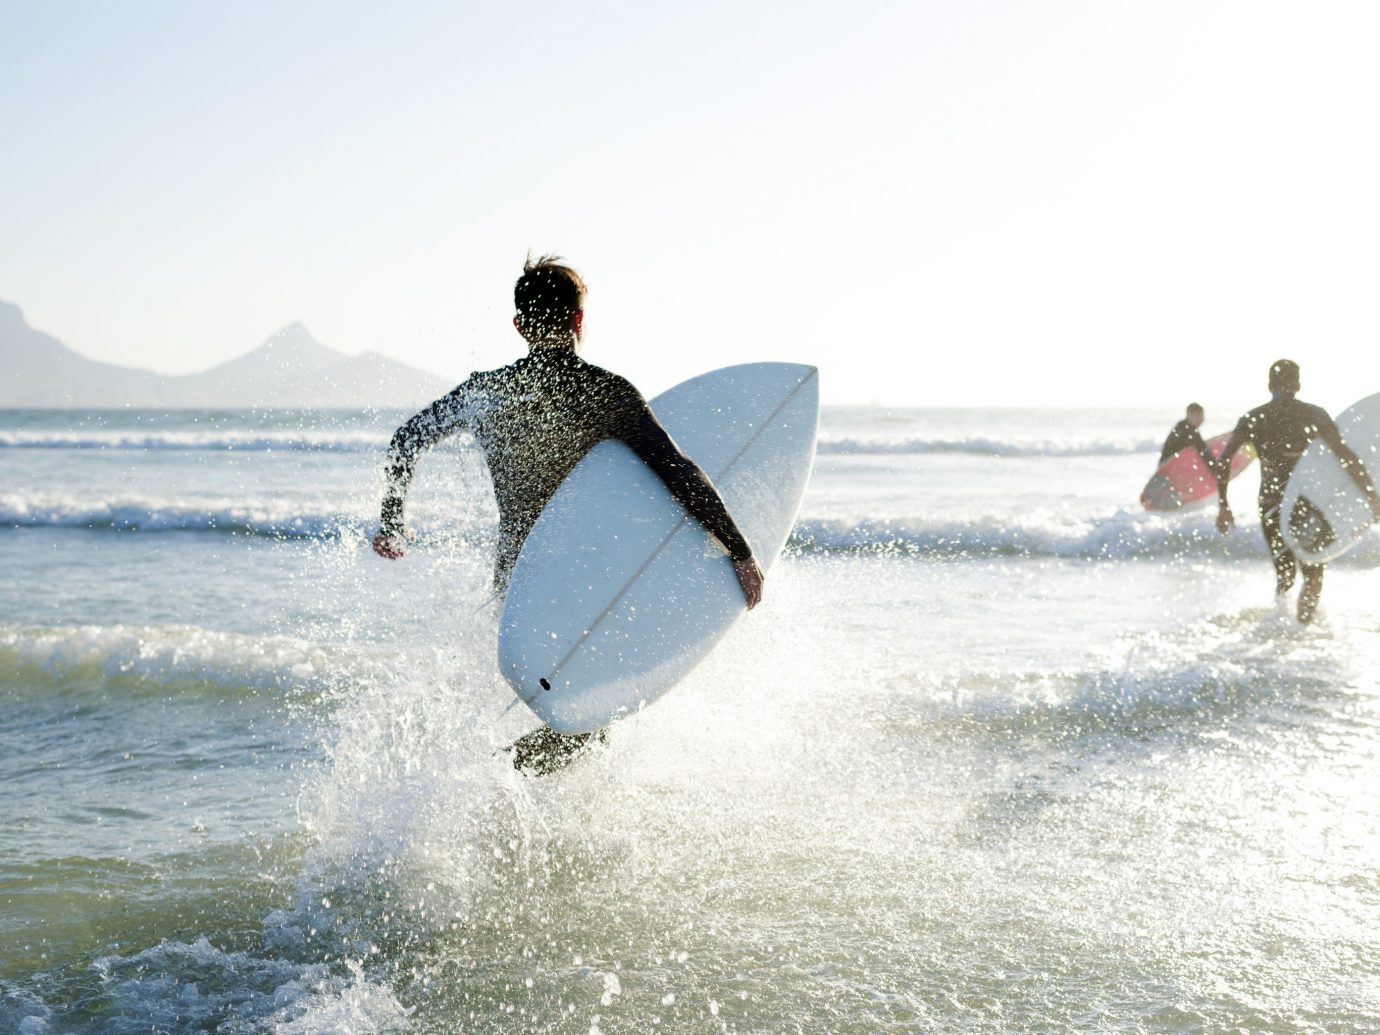 Influencers + Tastemakers Offbeat Style + Design Travel Shop Trip Ideas water outdoor sky surfing man water sport person surfboard Ocean sports Sport surface water sports wind wave boardsport surfing equipment and supplies wave Sea sailing extreme sport windsurfing paddle day